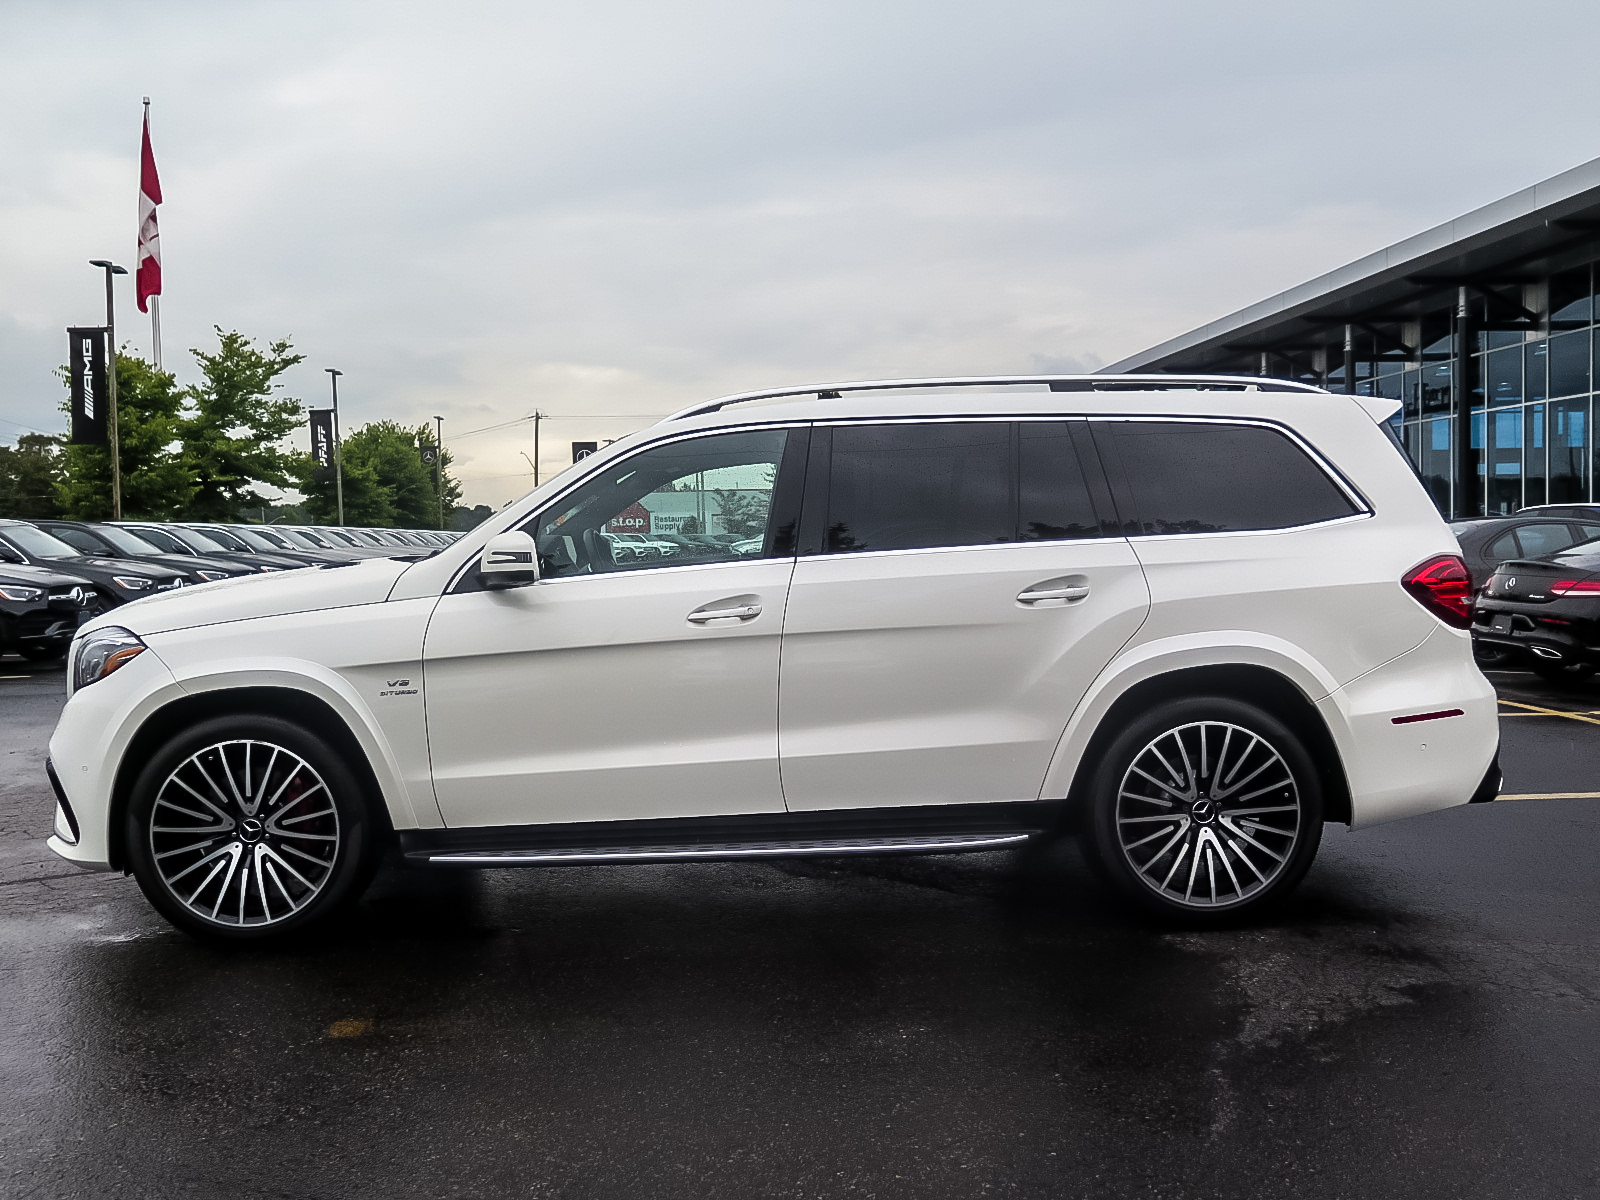 Certified Pre-Owned 2017 Mercedes-Benz GLS63 AMG 4MATIC SUV